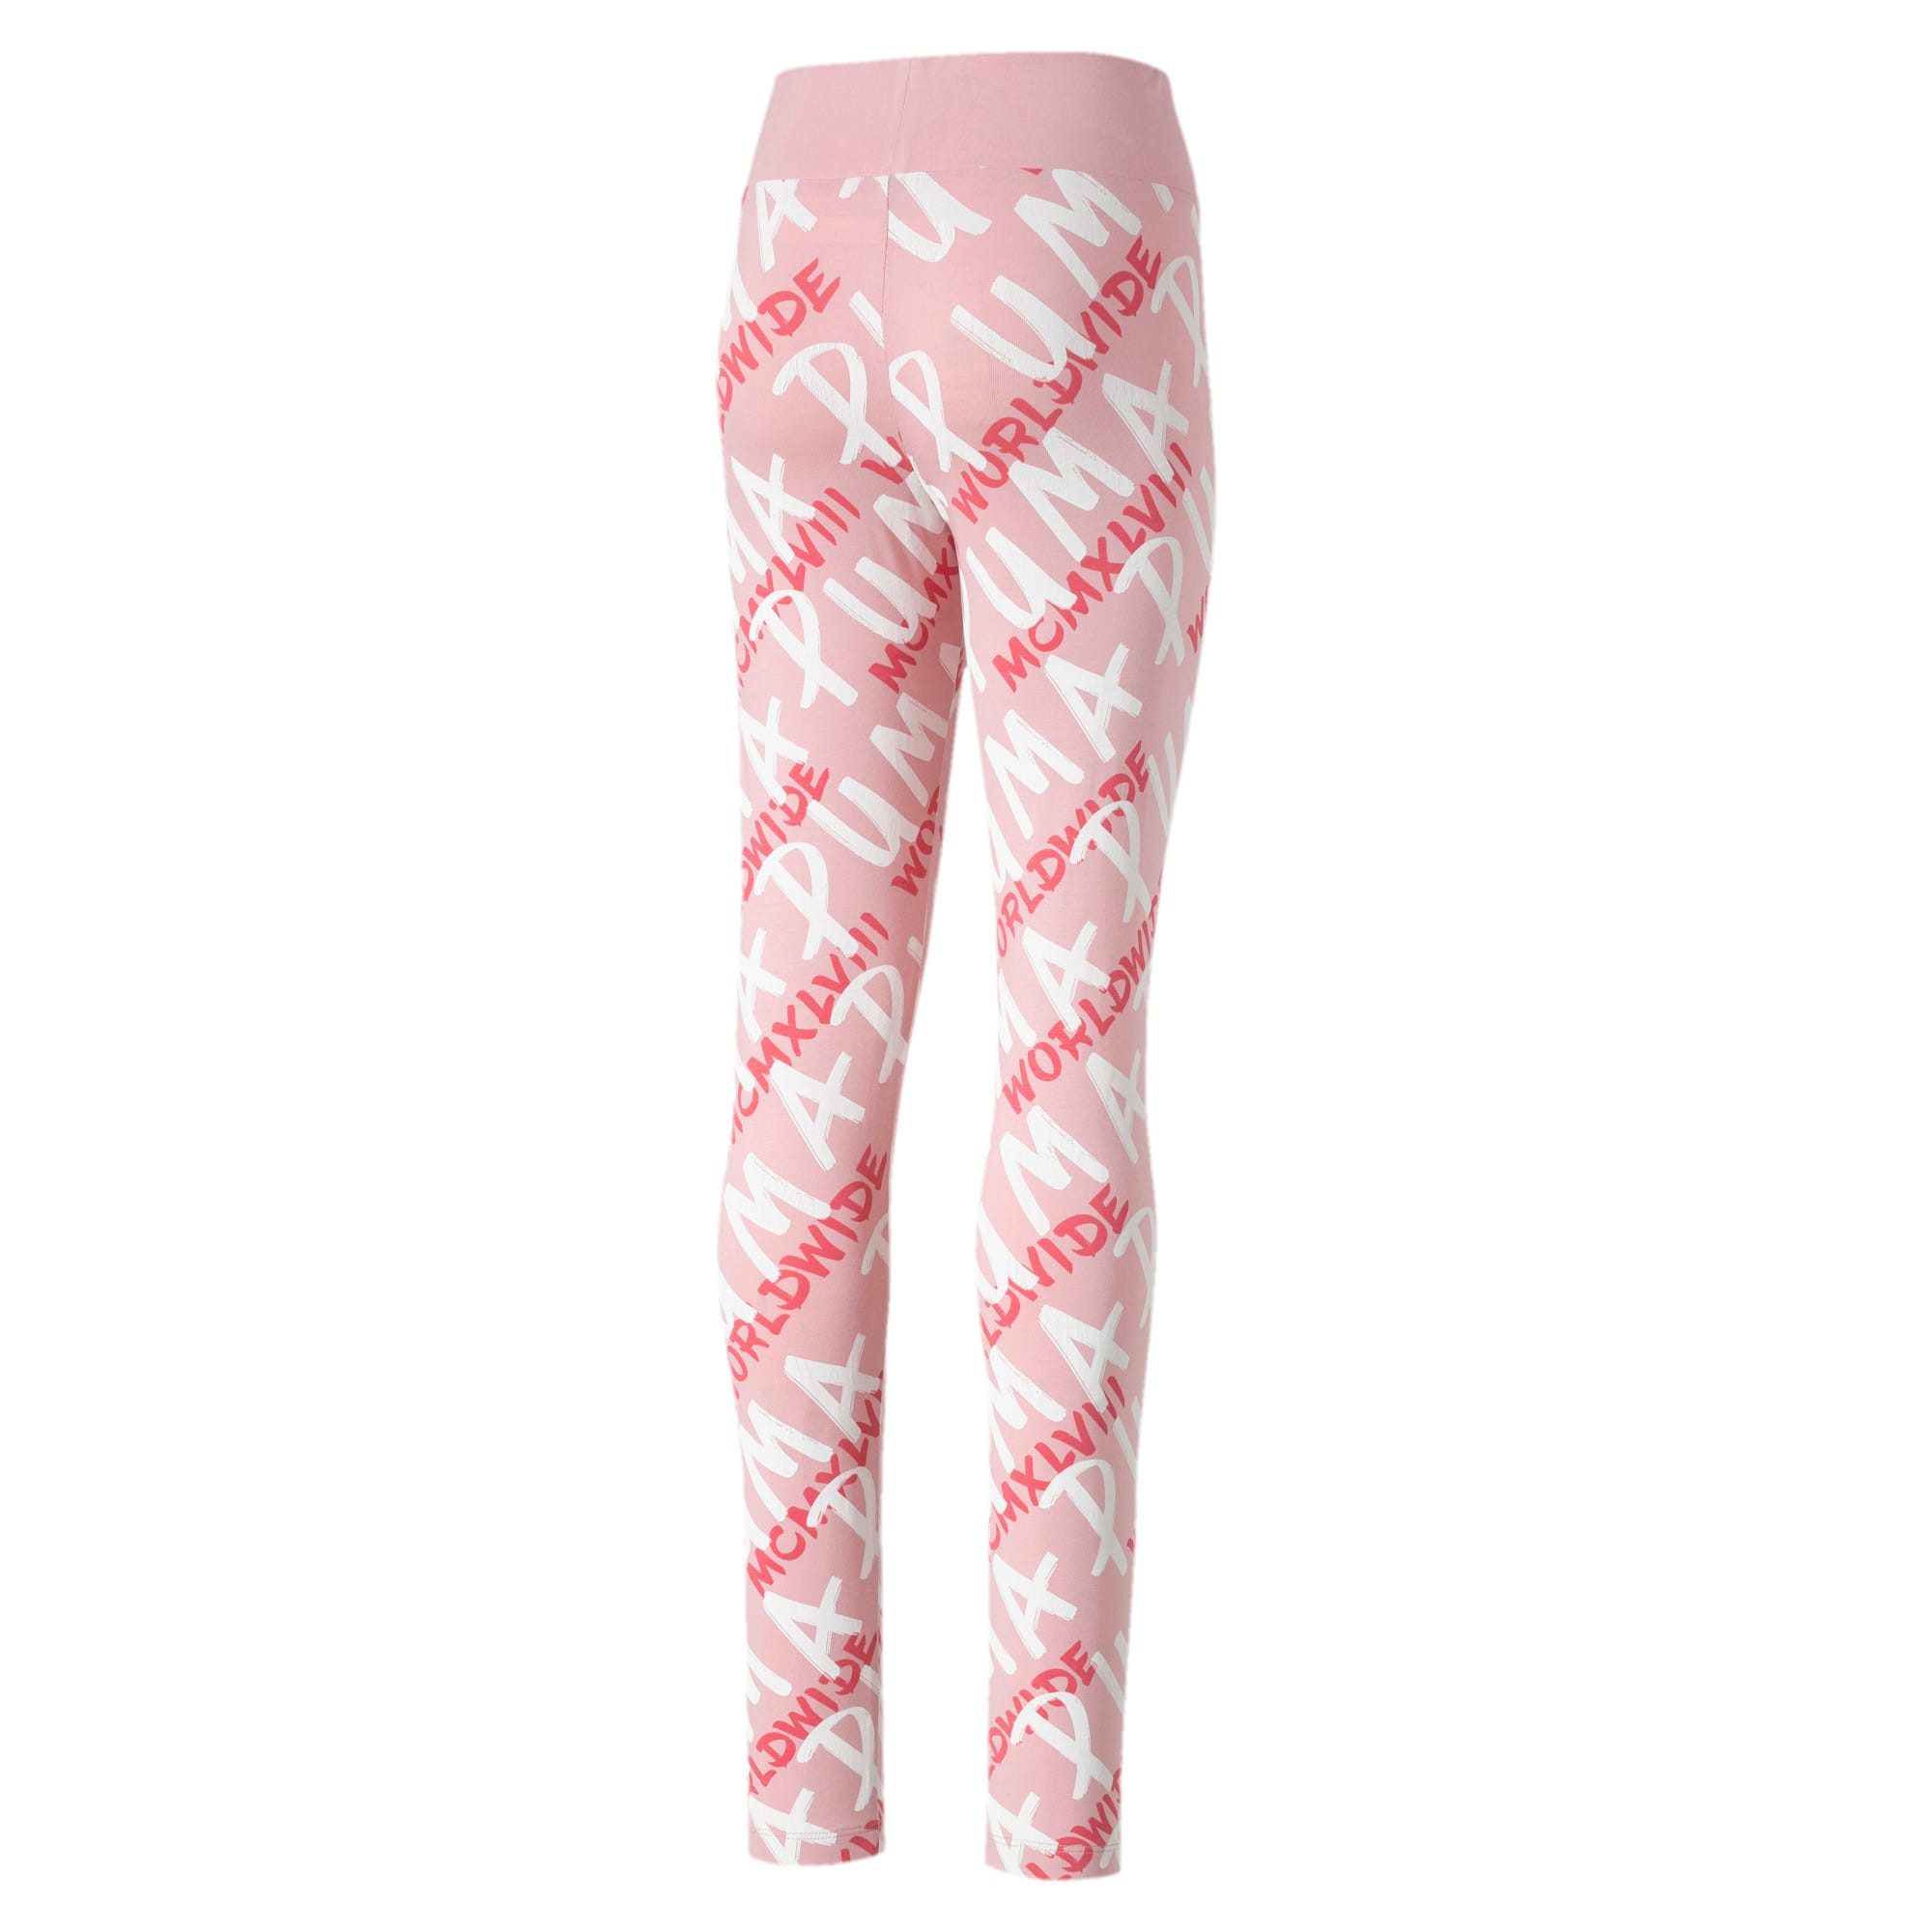 Thumbnail 2 of Alpha Girls' Leggings, Bridal Rose, medium-IND